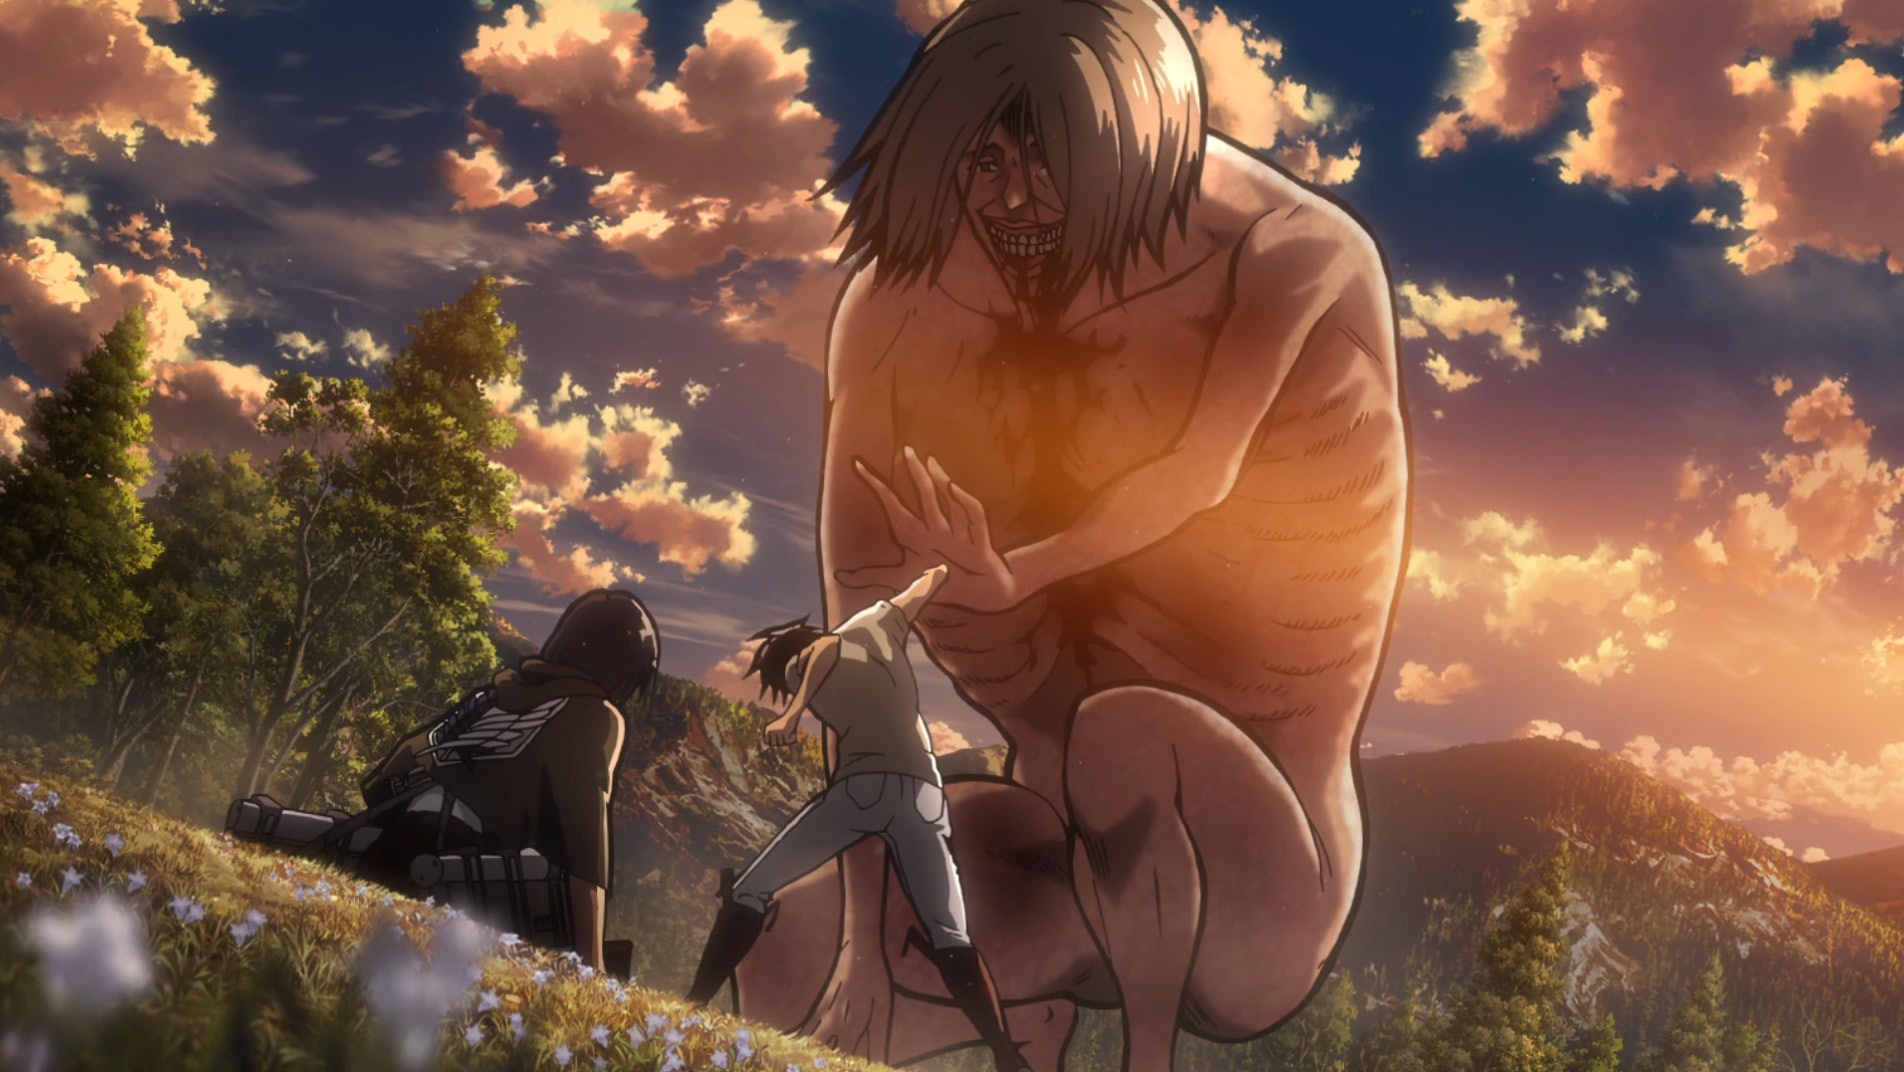 Eren triggers the Coordinate punching the outstretched hand of the Smiling Titan.